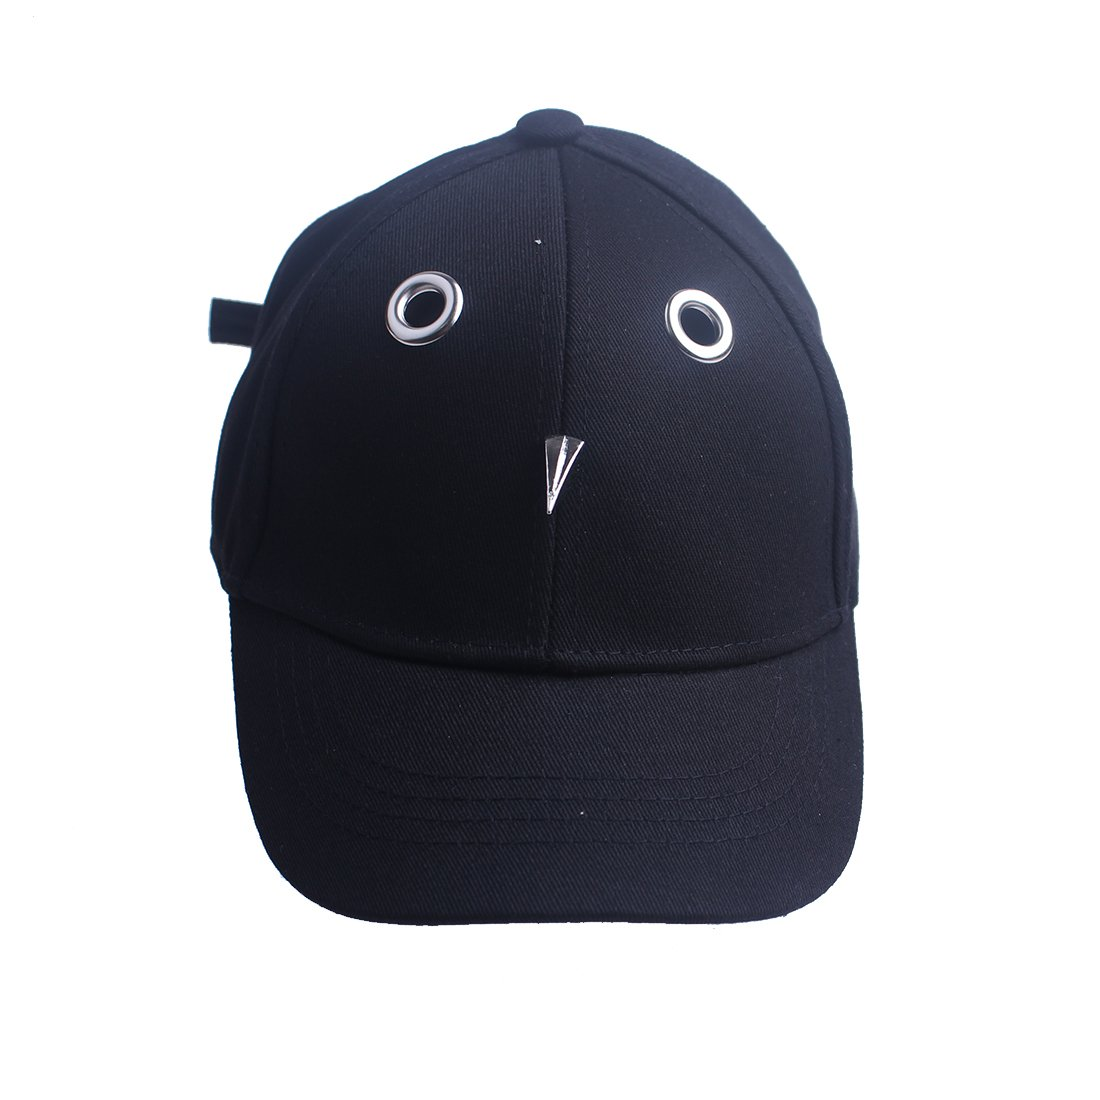 KimmyKu Fashion 3D Bird Style Black Baseball Cap Hat For Little Kids Childs Boy Girl (Black)